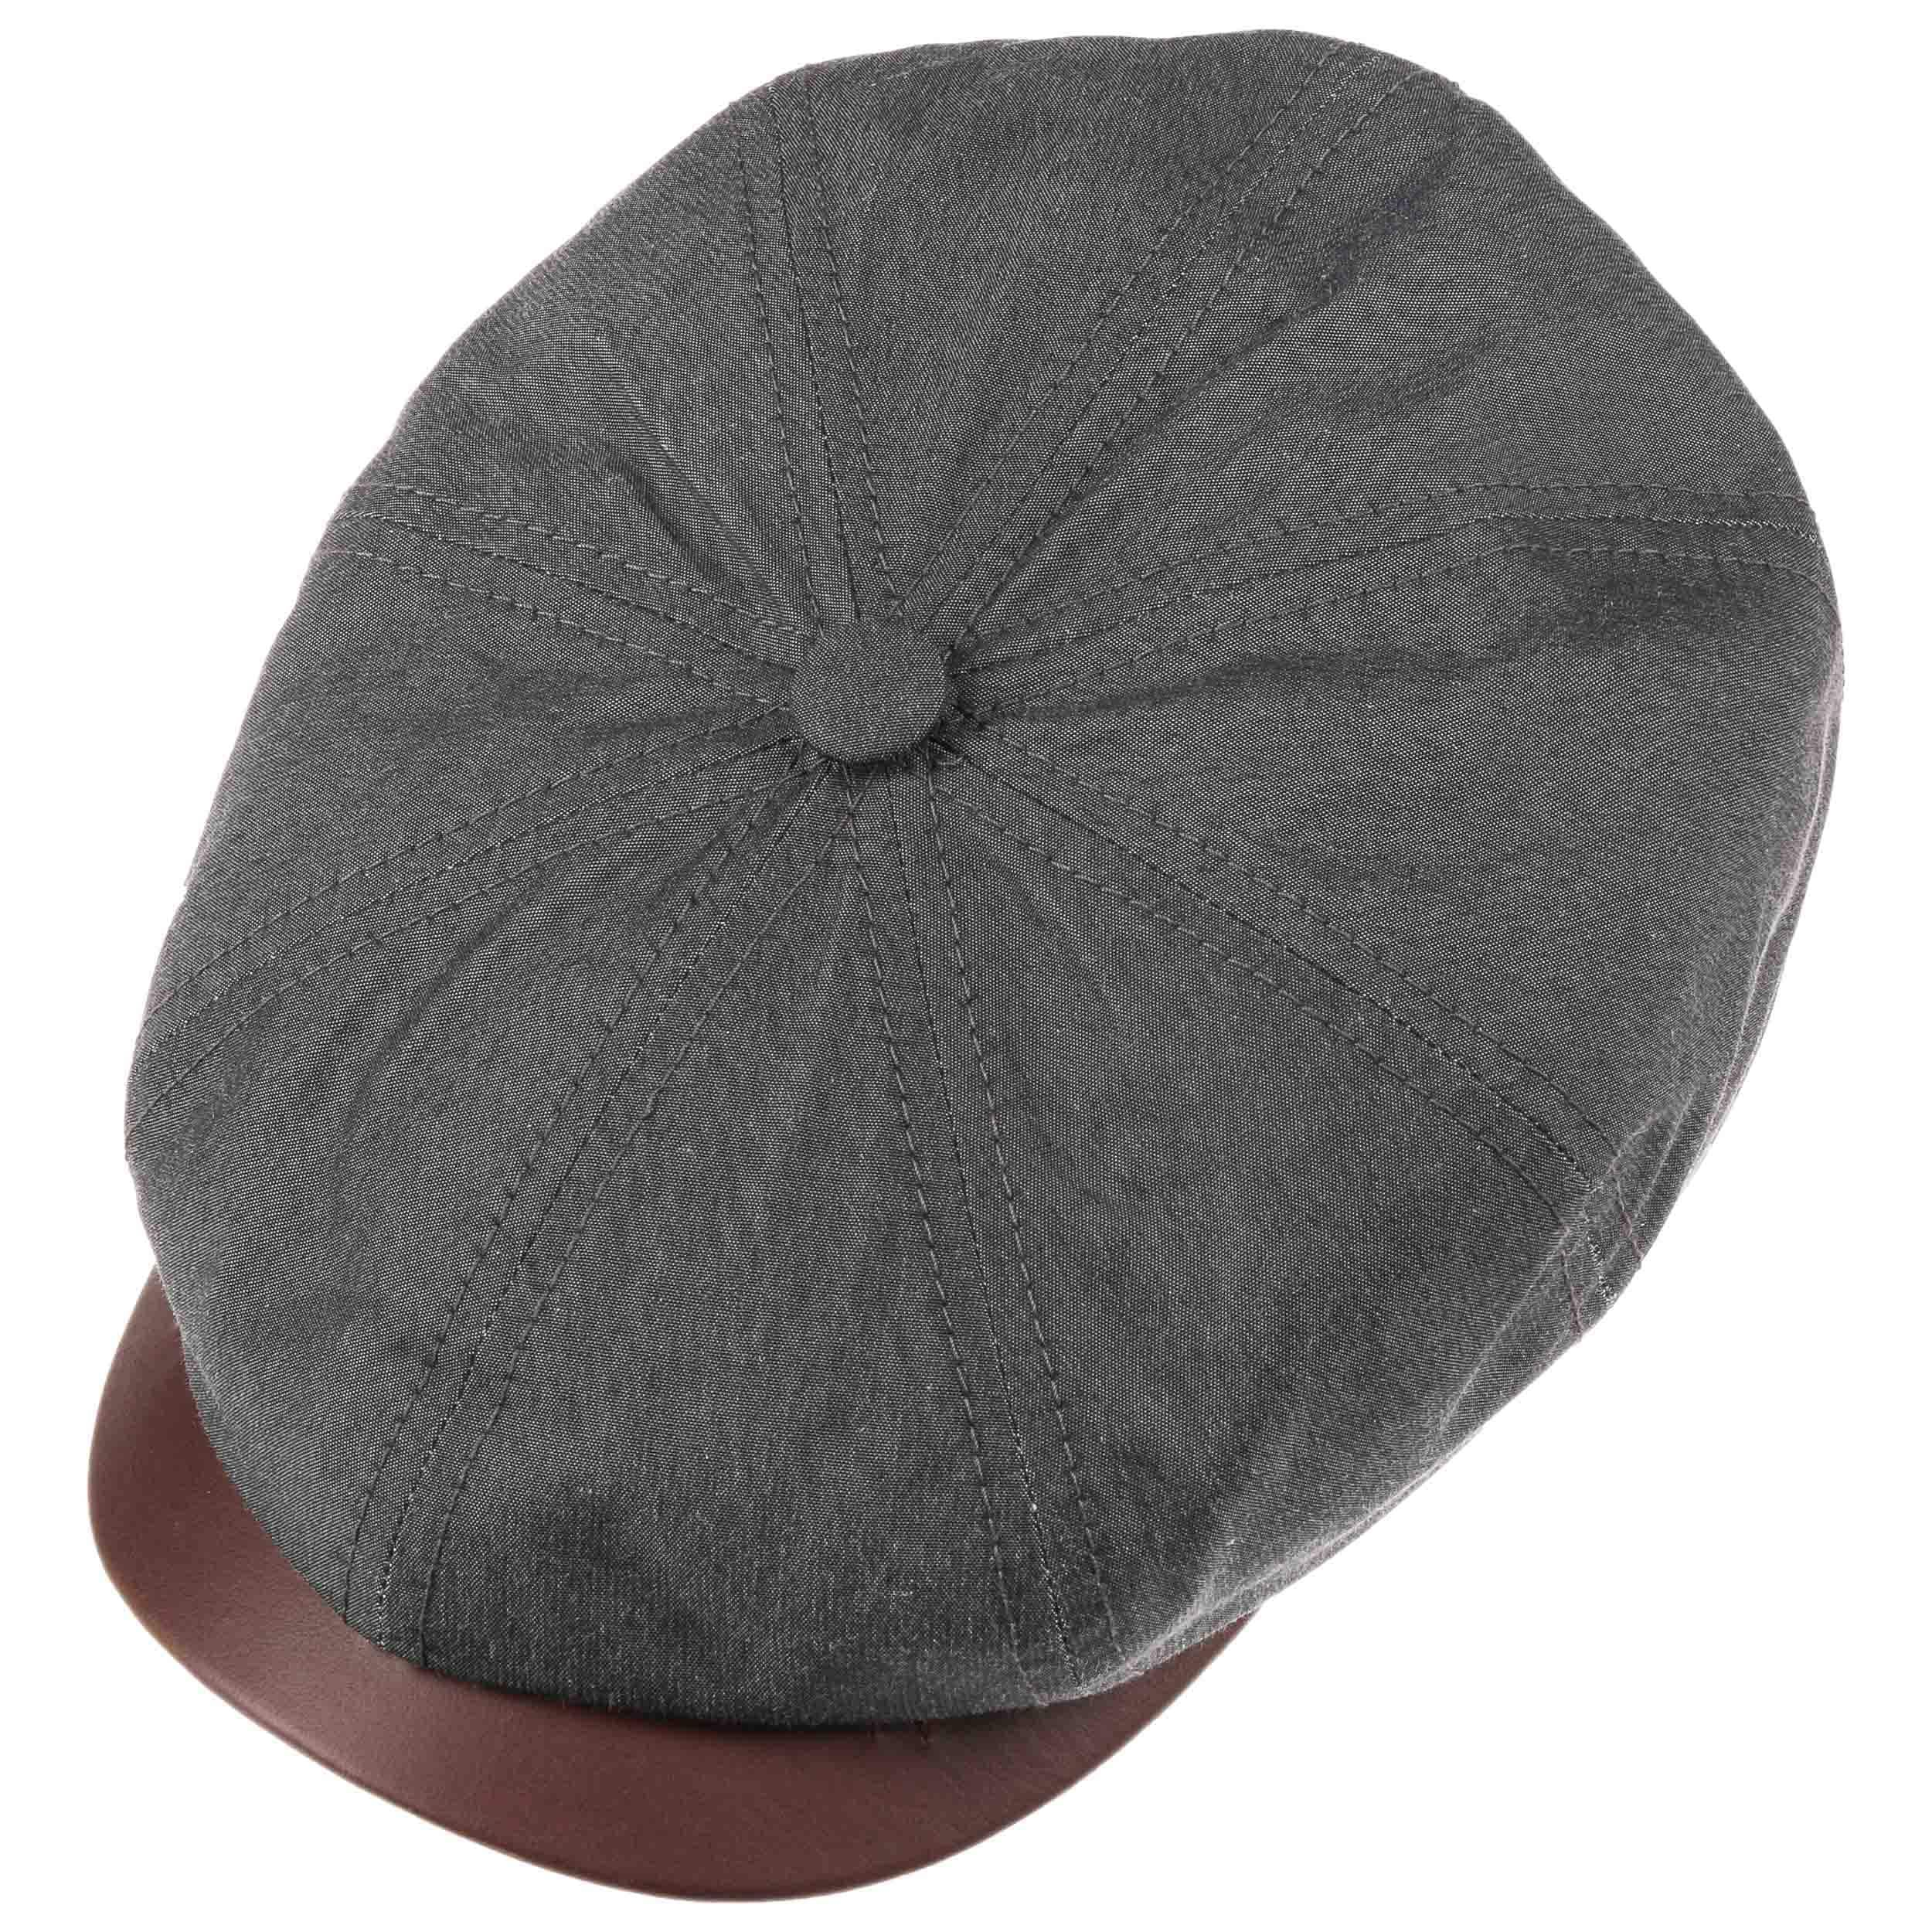 Hatteras Waxed Cotton Outdoor Cap dunkelgrau